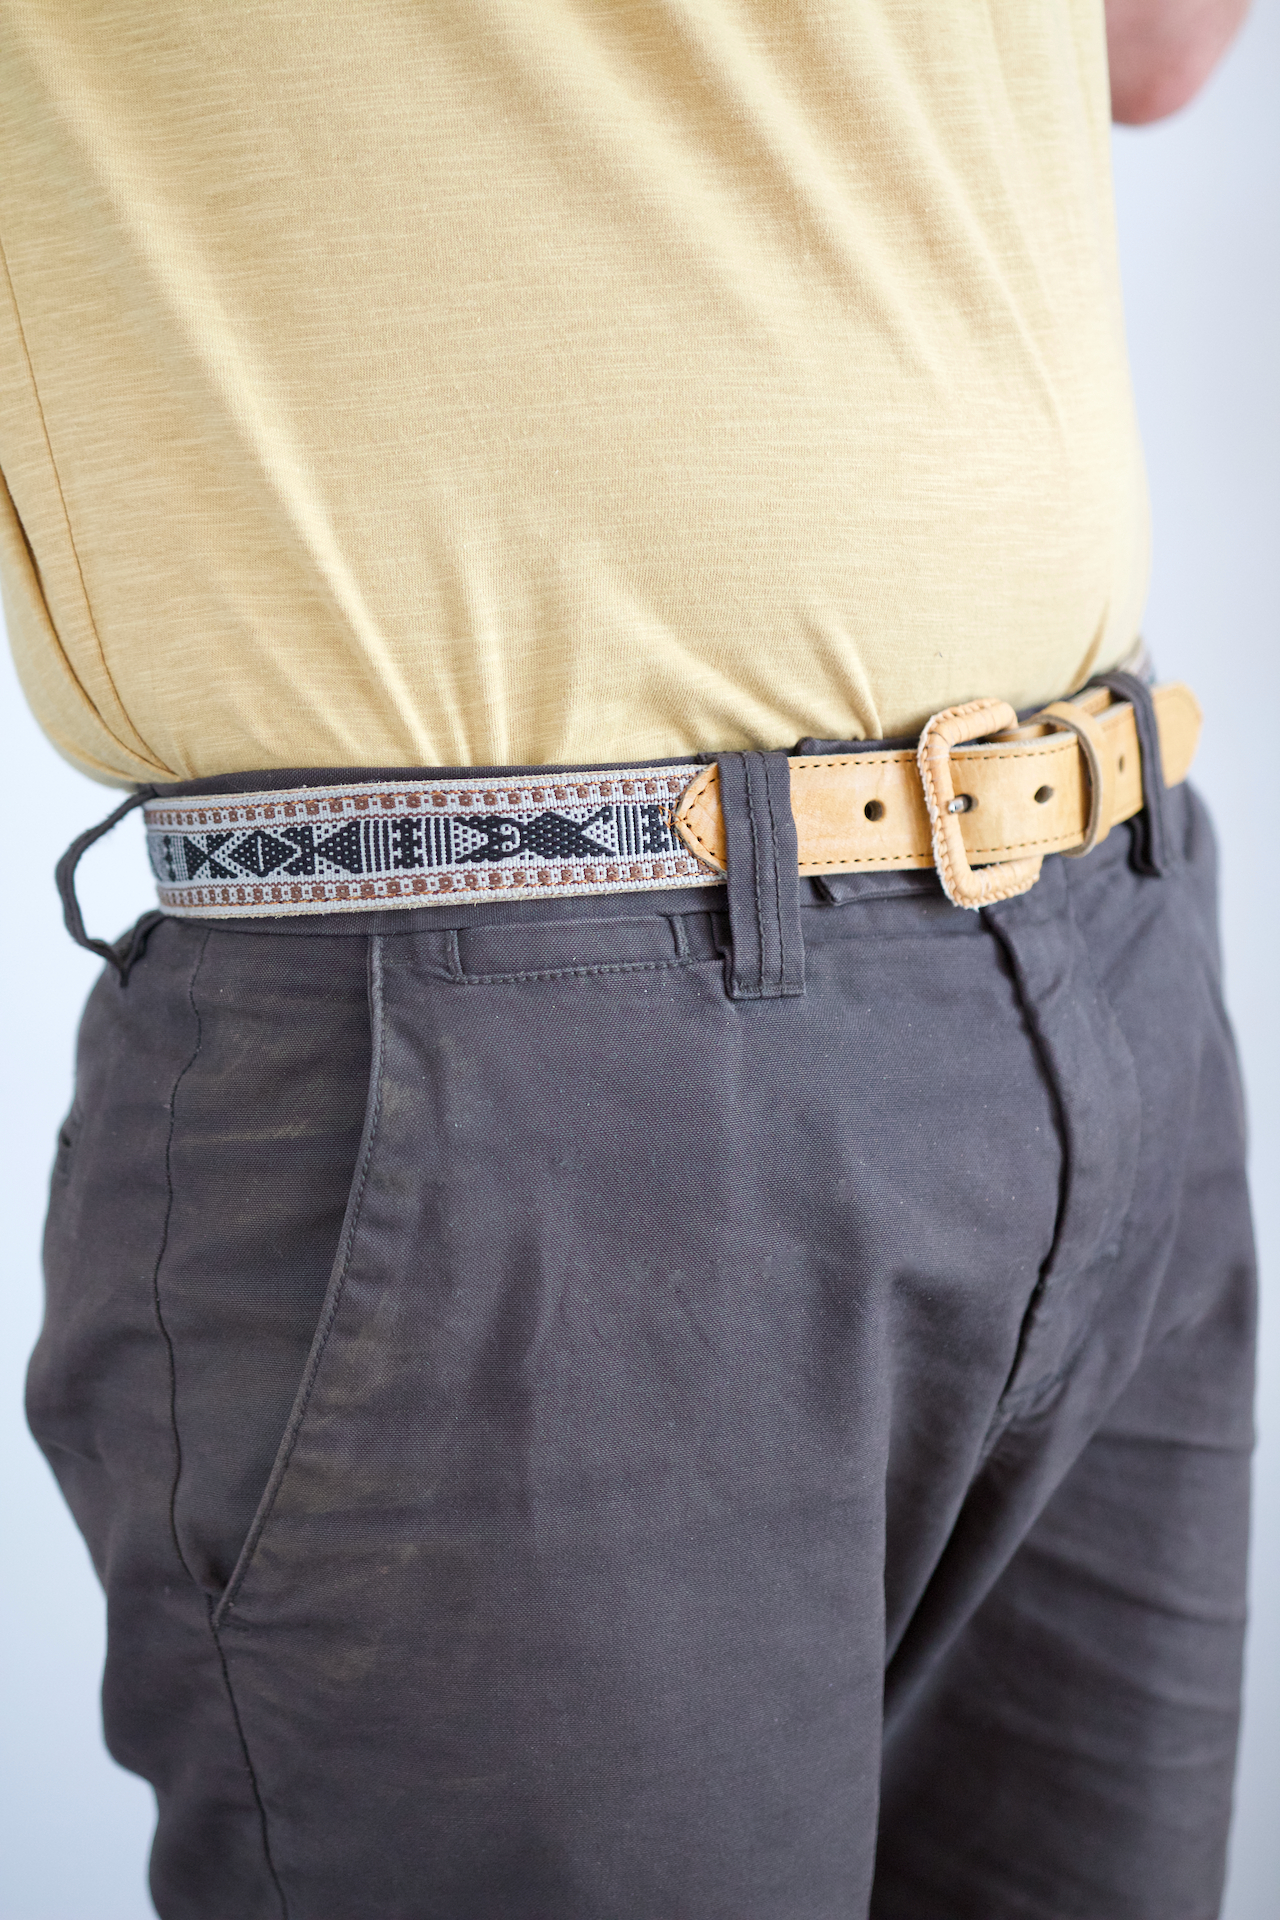 Santo Tomas Belt - Size 34 - Grey & Black